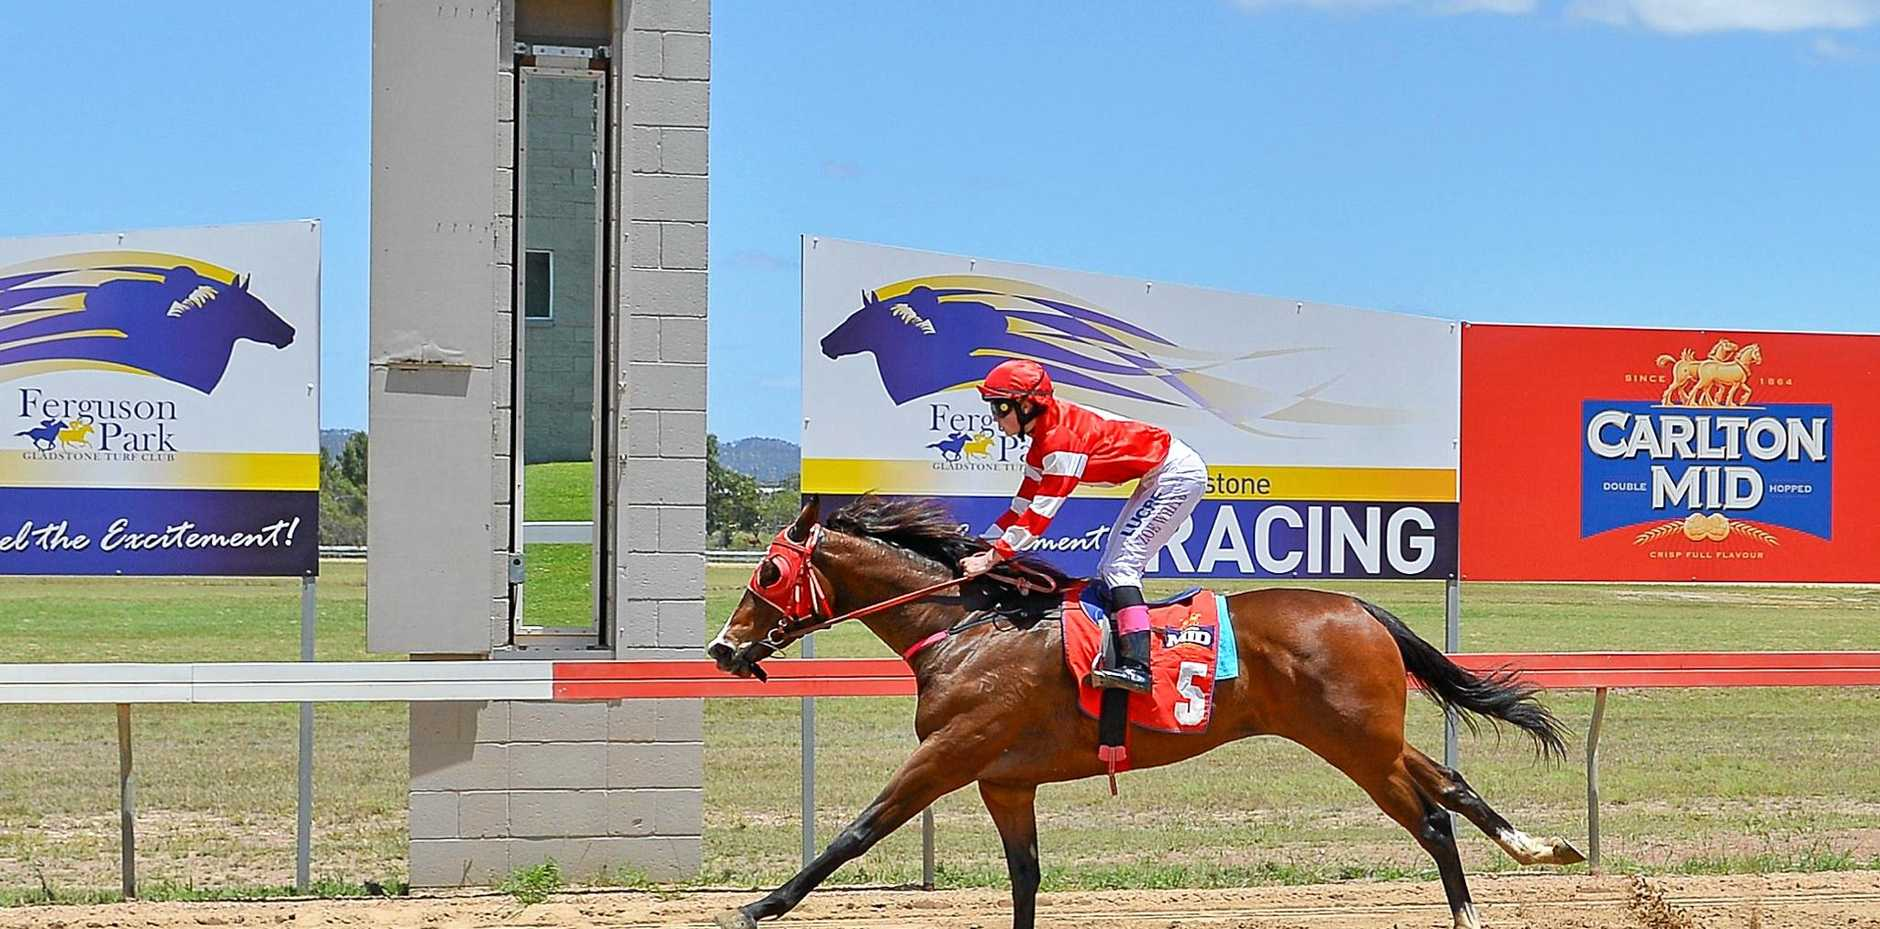 ROMPING WIN: That Pretty Girl strides to first place in race of the Melbourne Cup meet at Ferguson Park. Local Denis Schultz is the trainer.